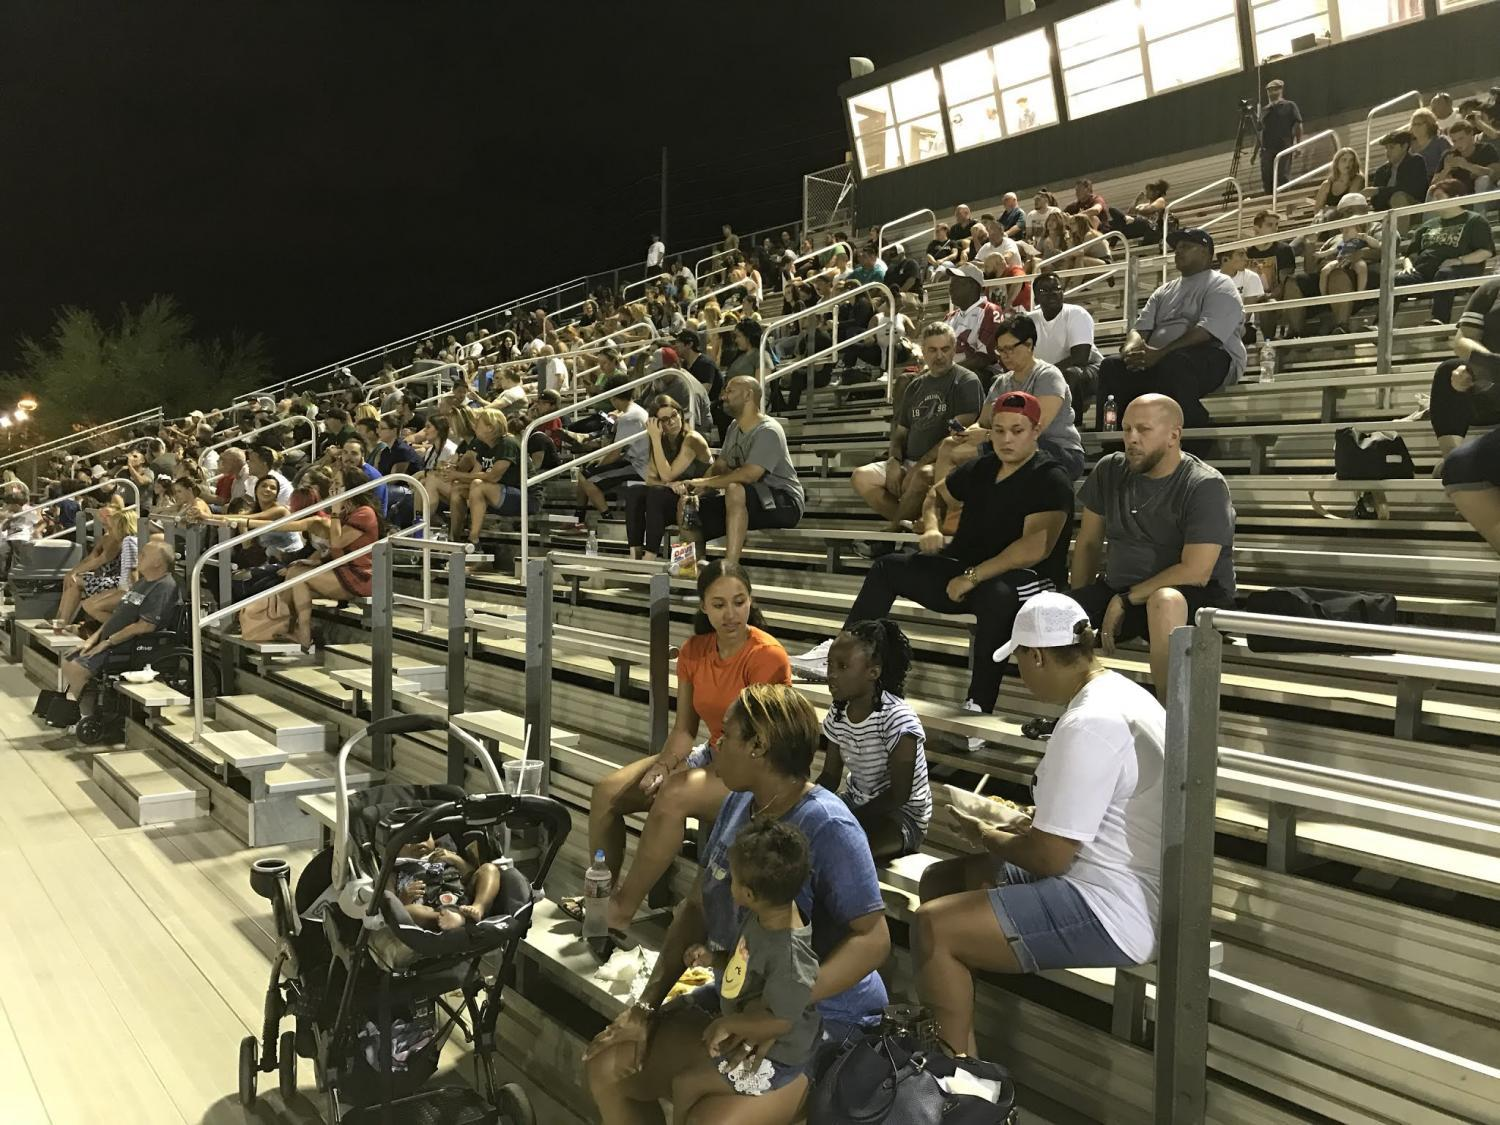 Fans watching a football game between Phoenix and Scottsdale Colleges on Sept. 1, 2018.